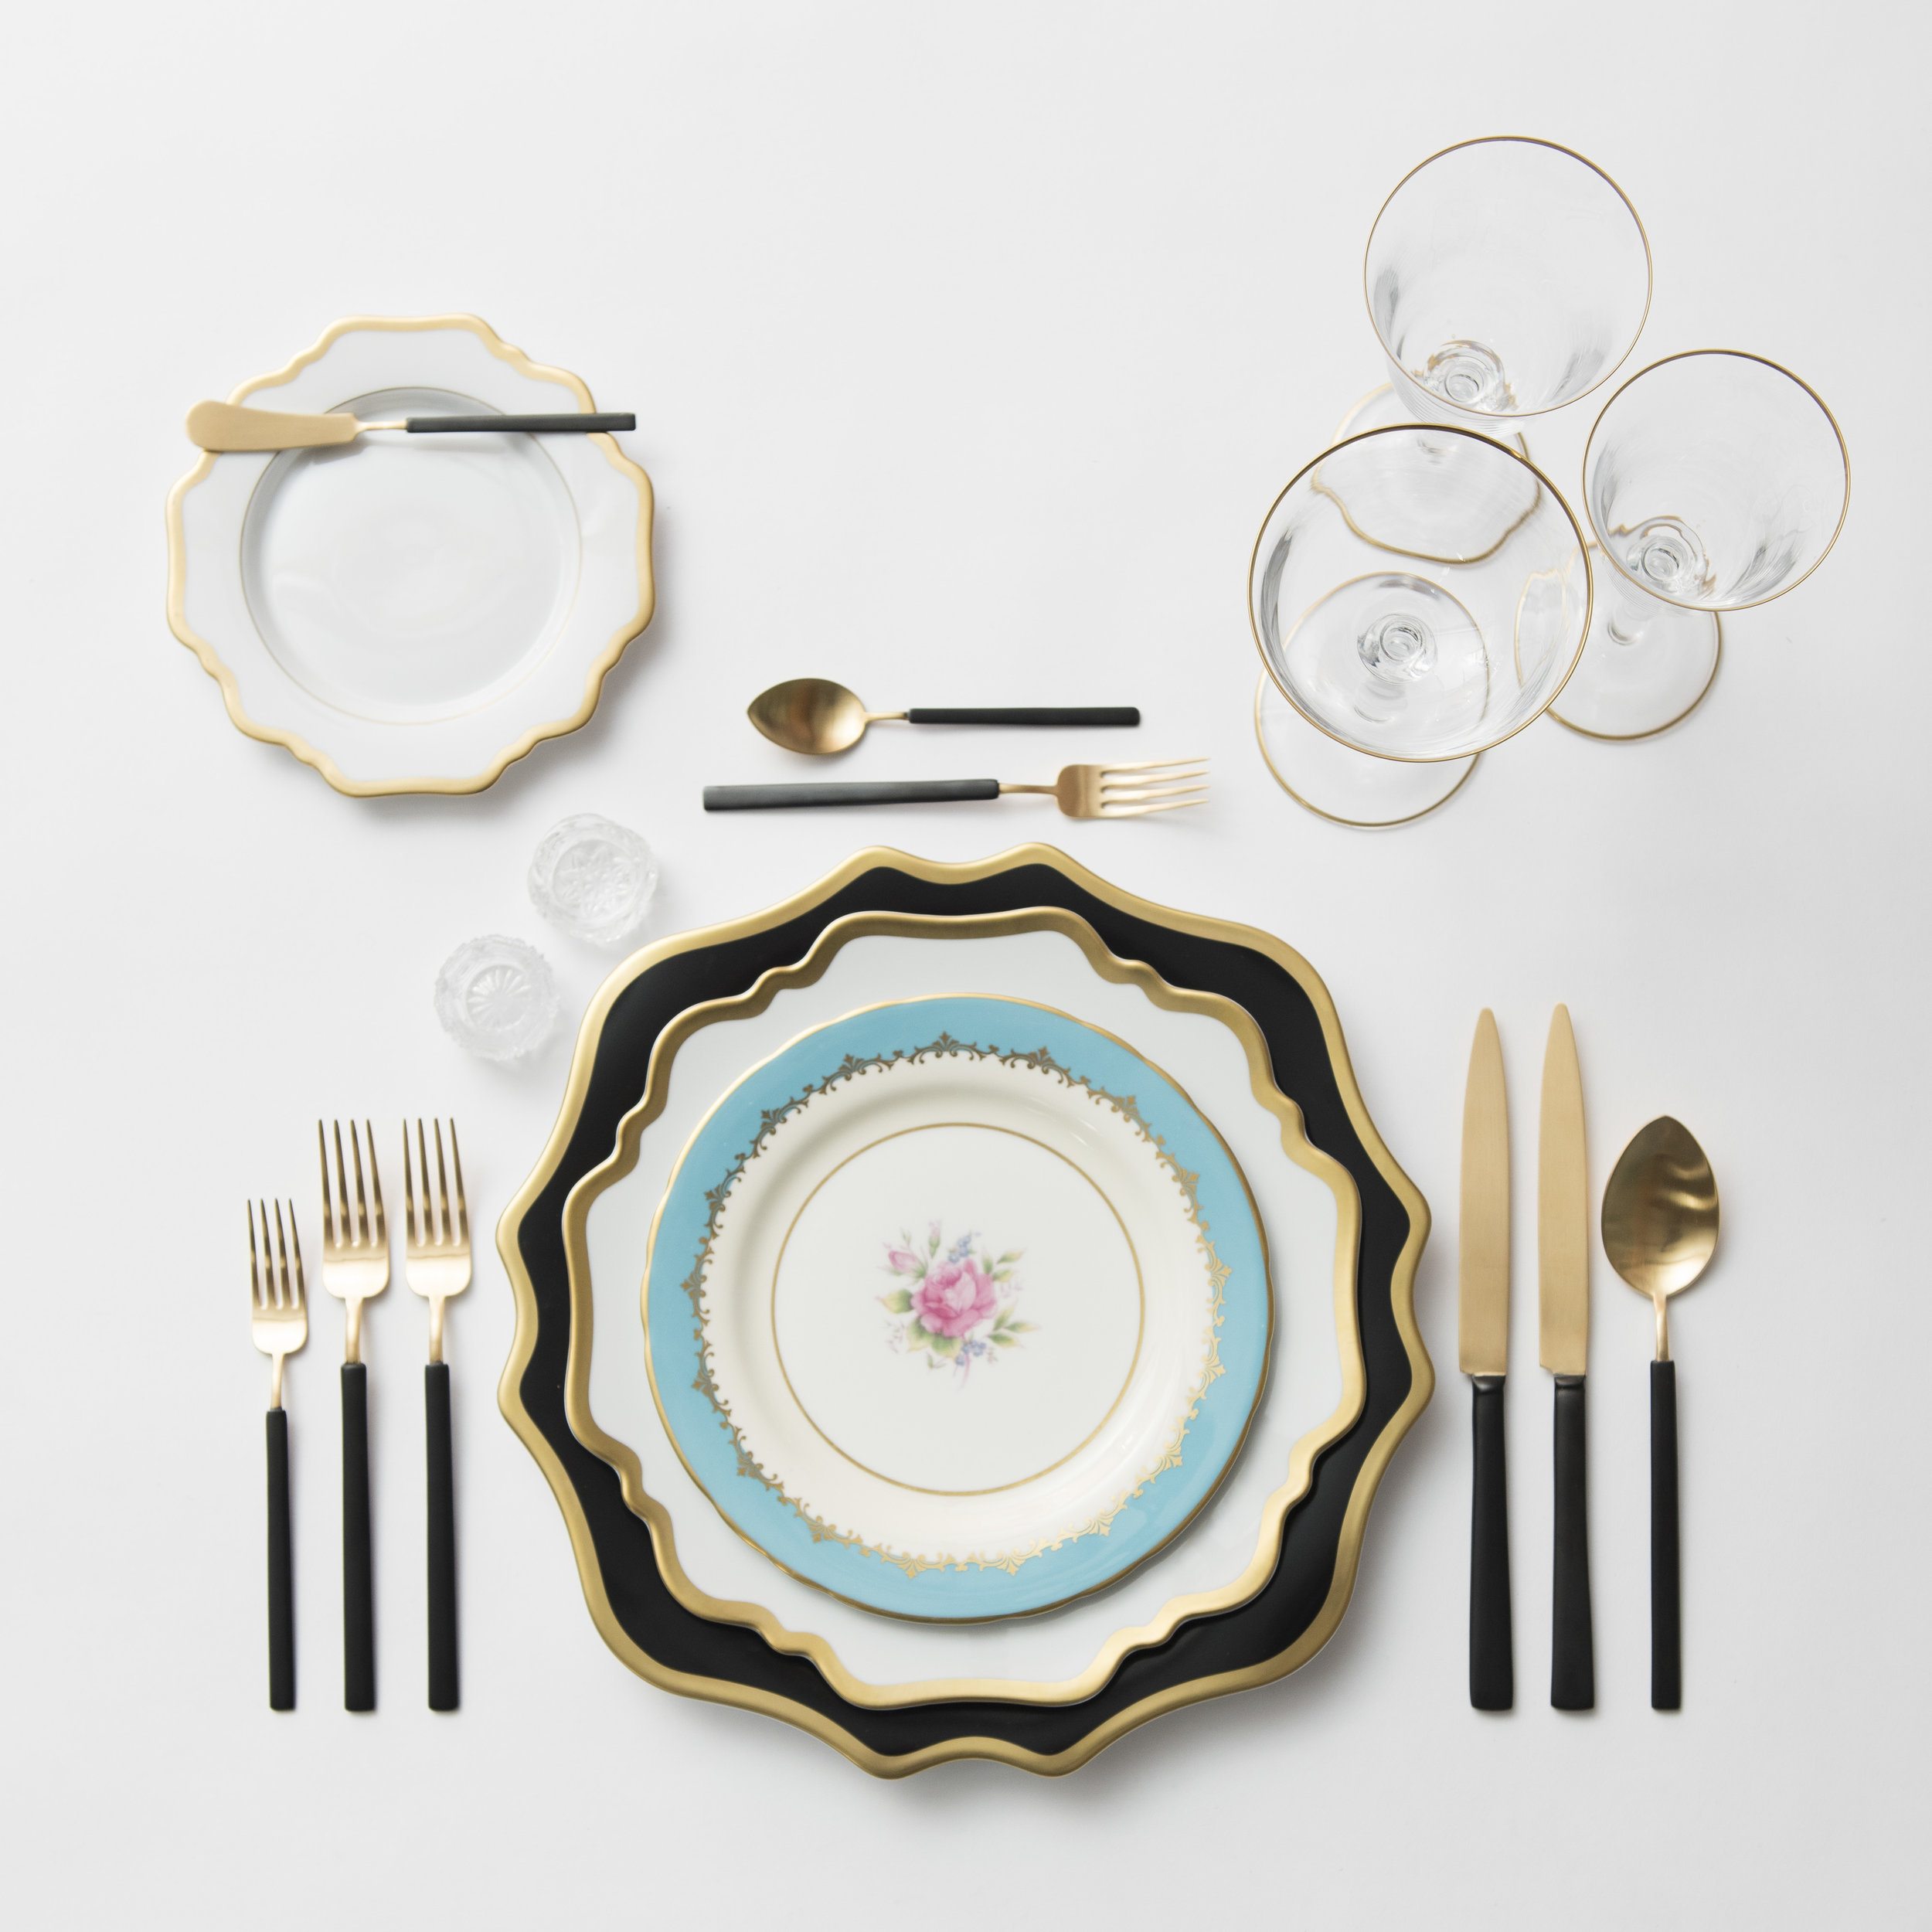 RENT: Anna Weatherley Chargers in Black/Gold + Anna Weatherley Dinnerware in White/Gold + Blue Botanicals Vintage China + Axel Flatware in Matte 24k Gold/Black + Chloe 24k Gold Rimmed Stemware + Antique Crystal Salt Cellars  SHOP: Anna Weatherley Dinnerware in White/Gold + Chloe 24k Gold Rimmed Stemware